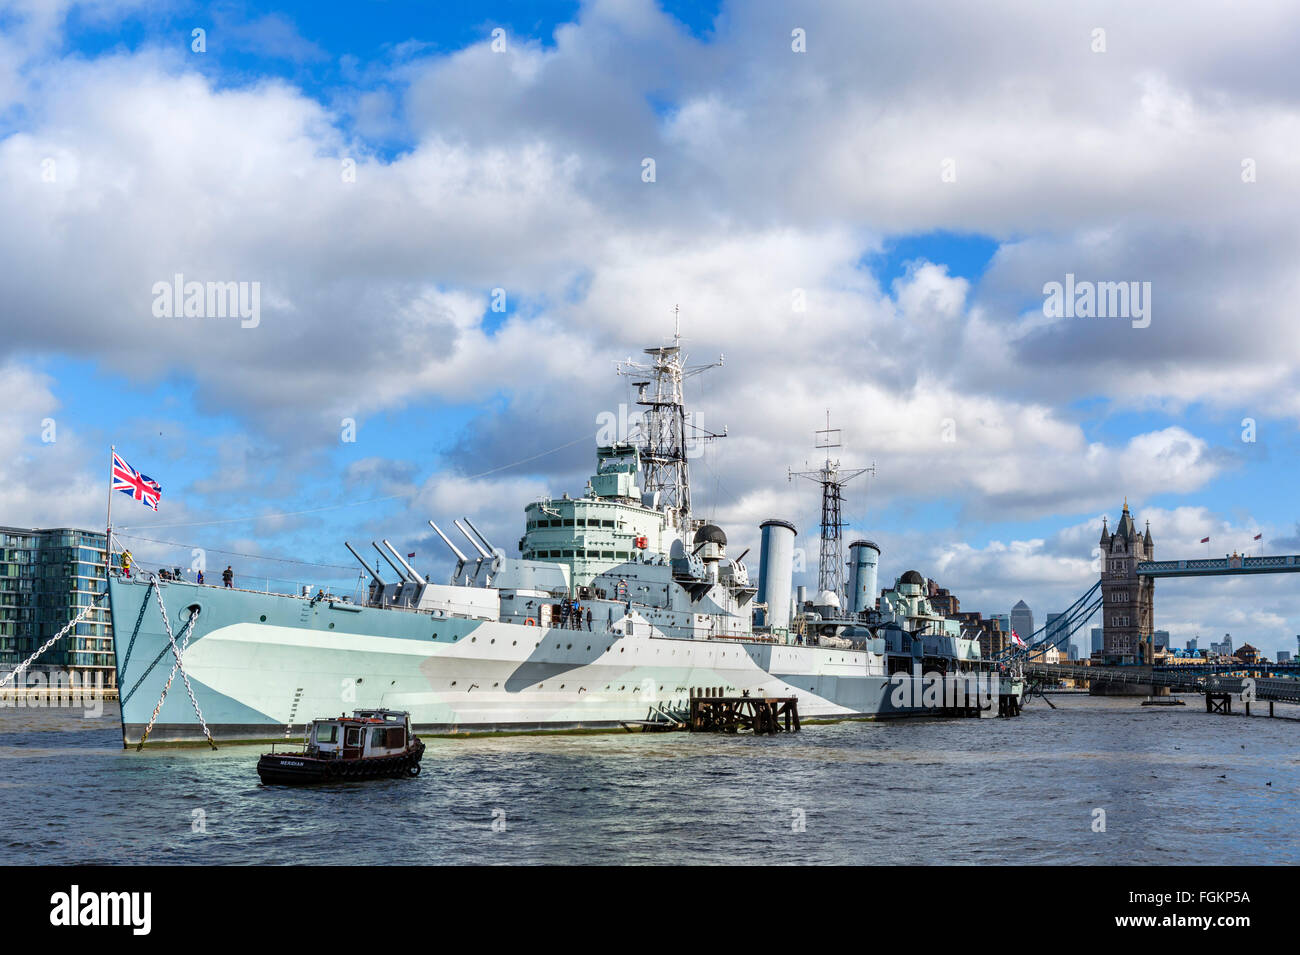 HMS Belfast, a museum ship moored on the River Thames near Tower Bridge, London, England, UK - Stock Image